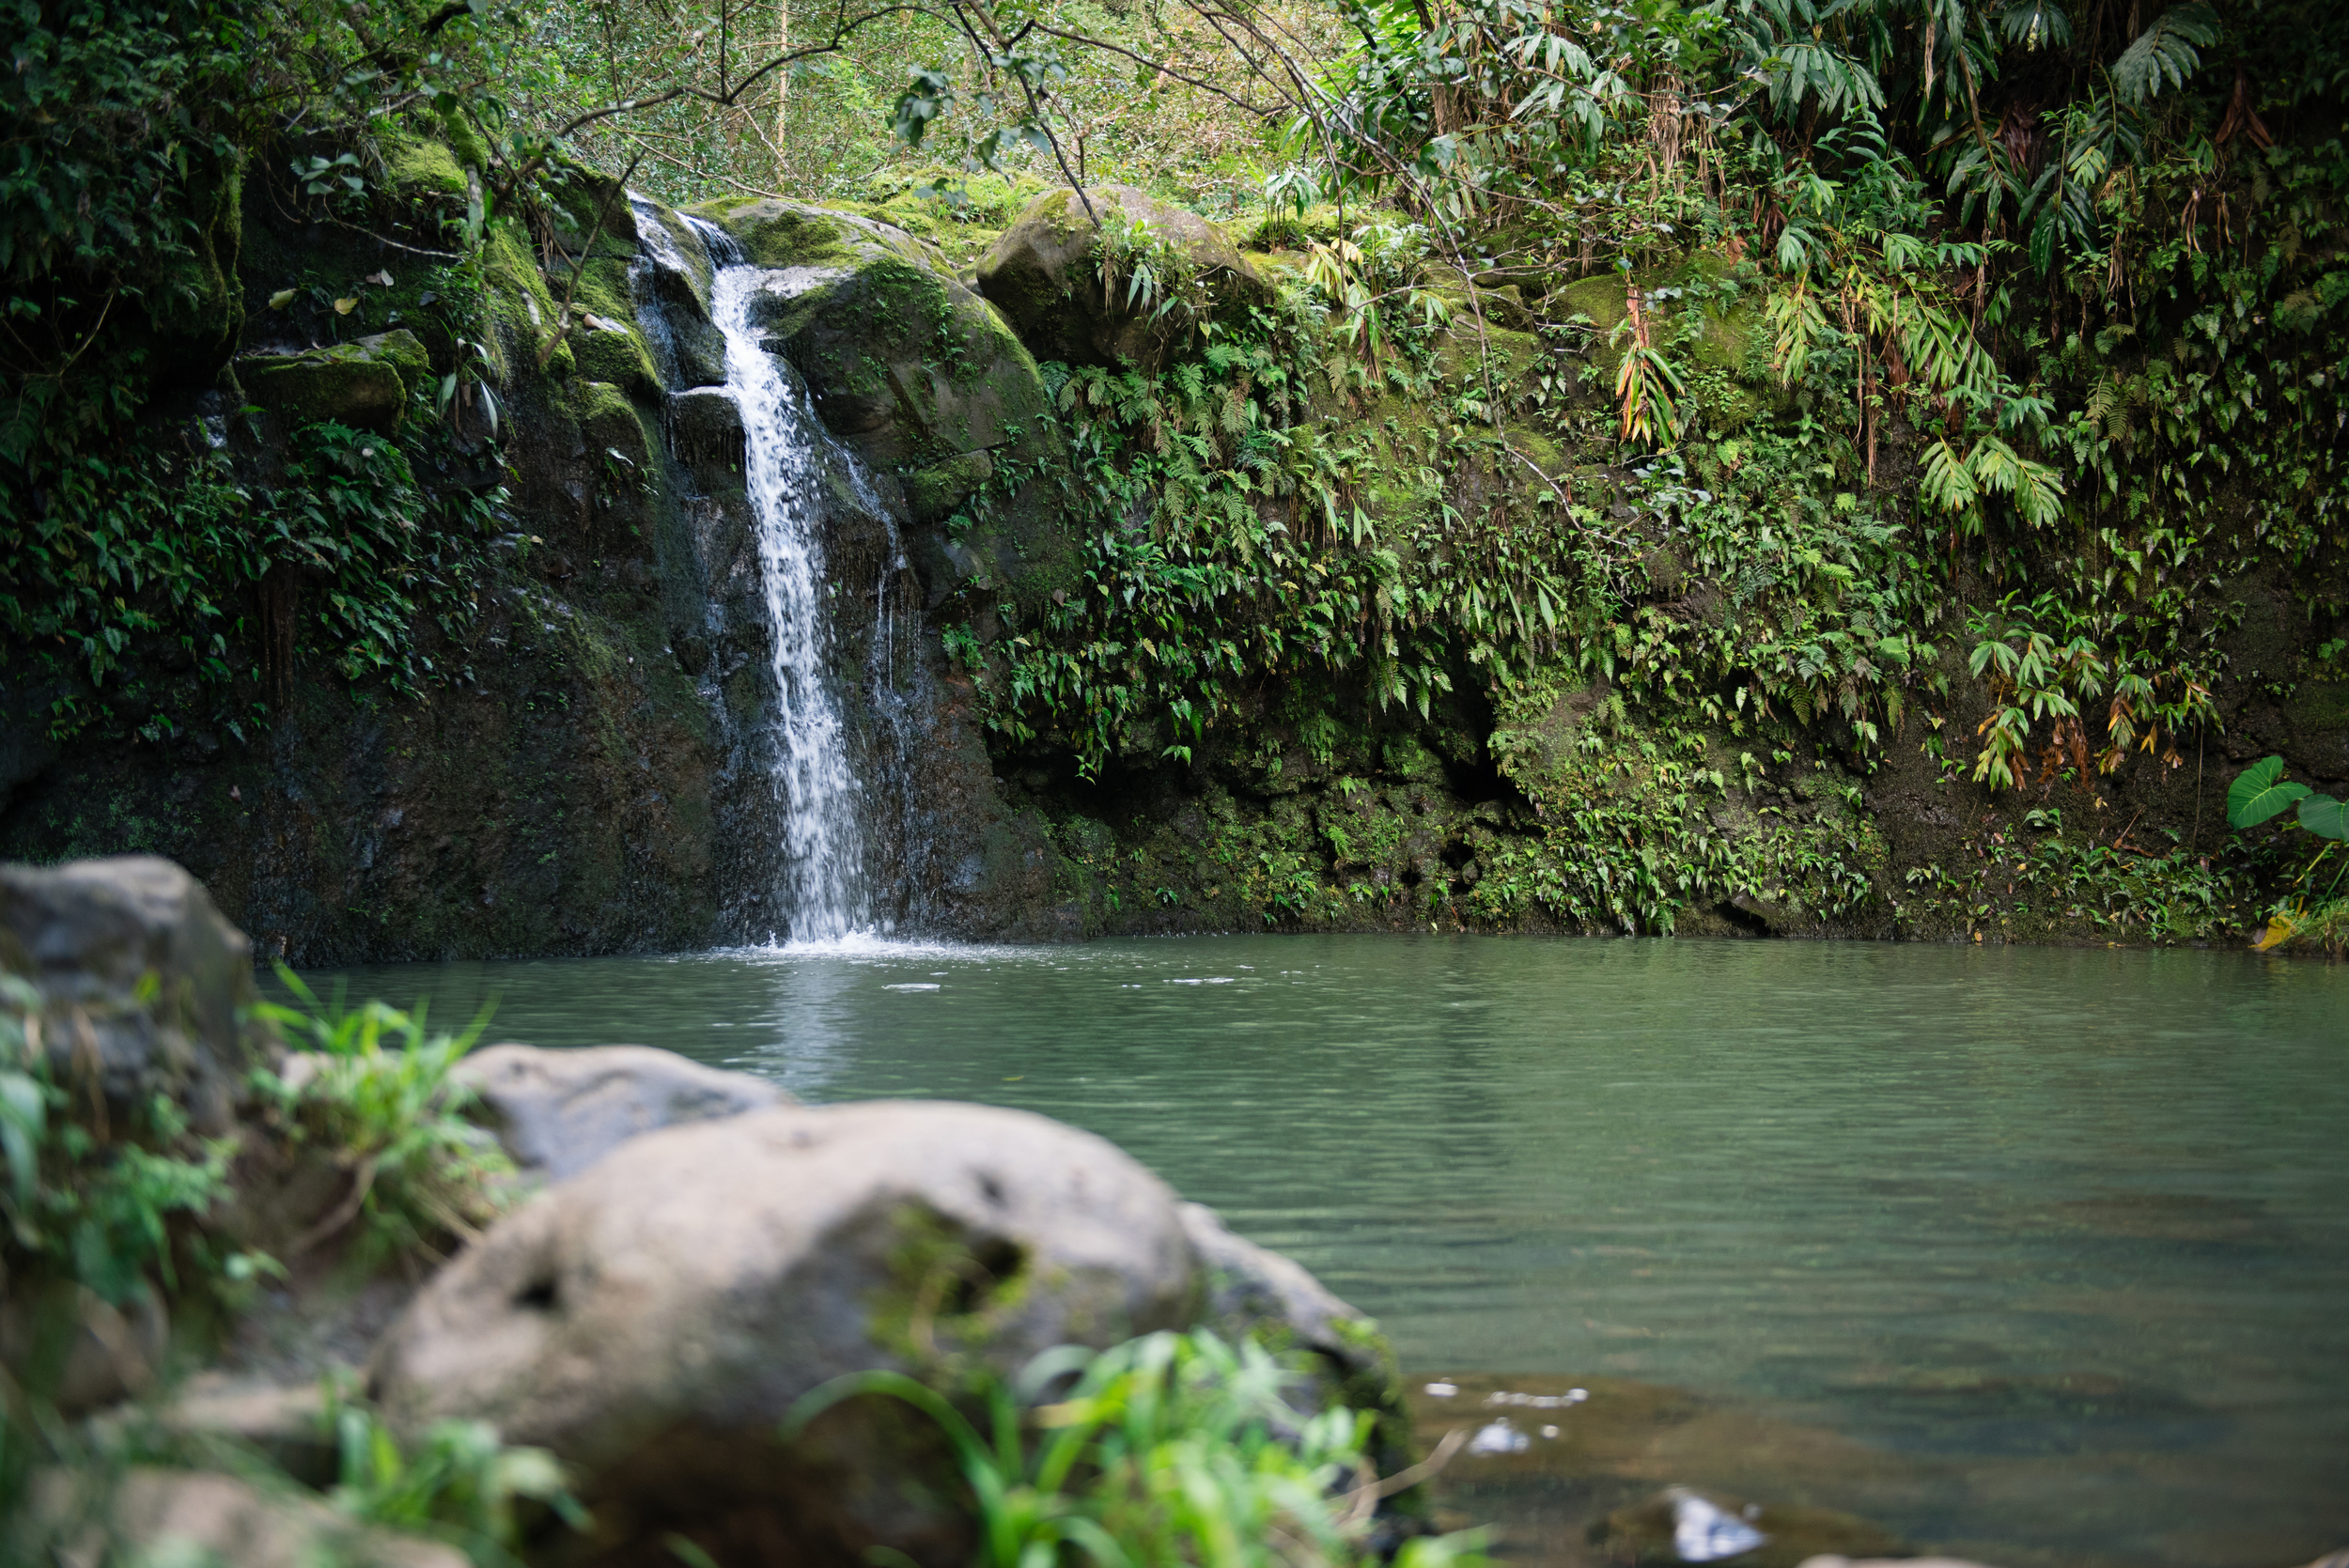 One of the many beautiful waterfalls just a short hike off the Road to Hana